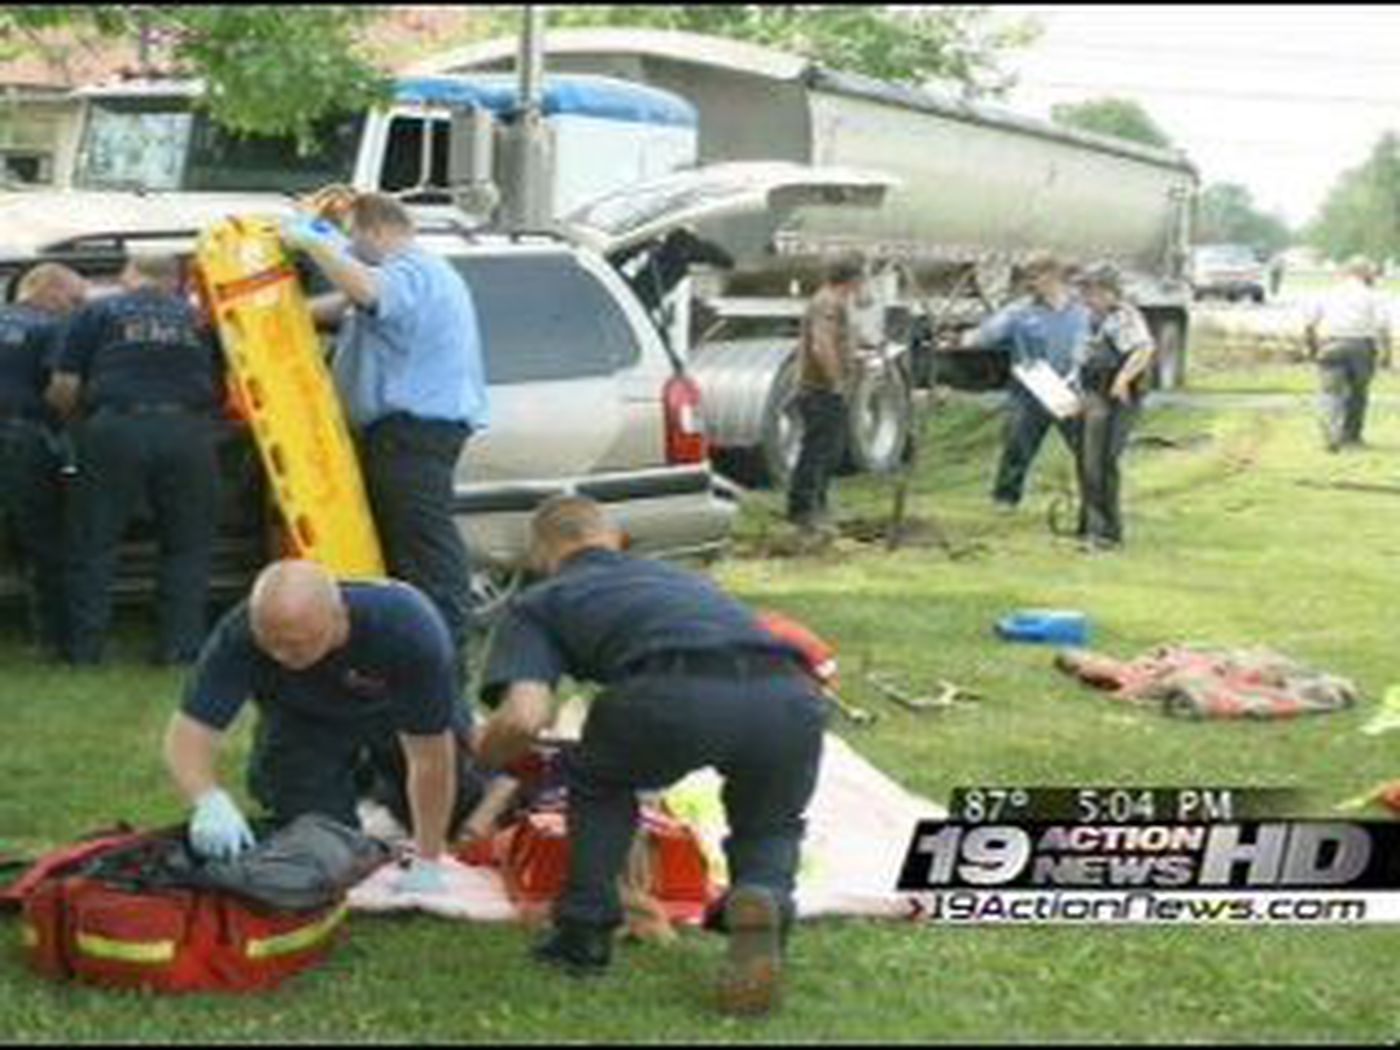 High School Students On Way To 4-H Event Injured In Crash